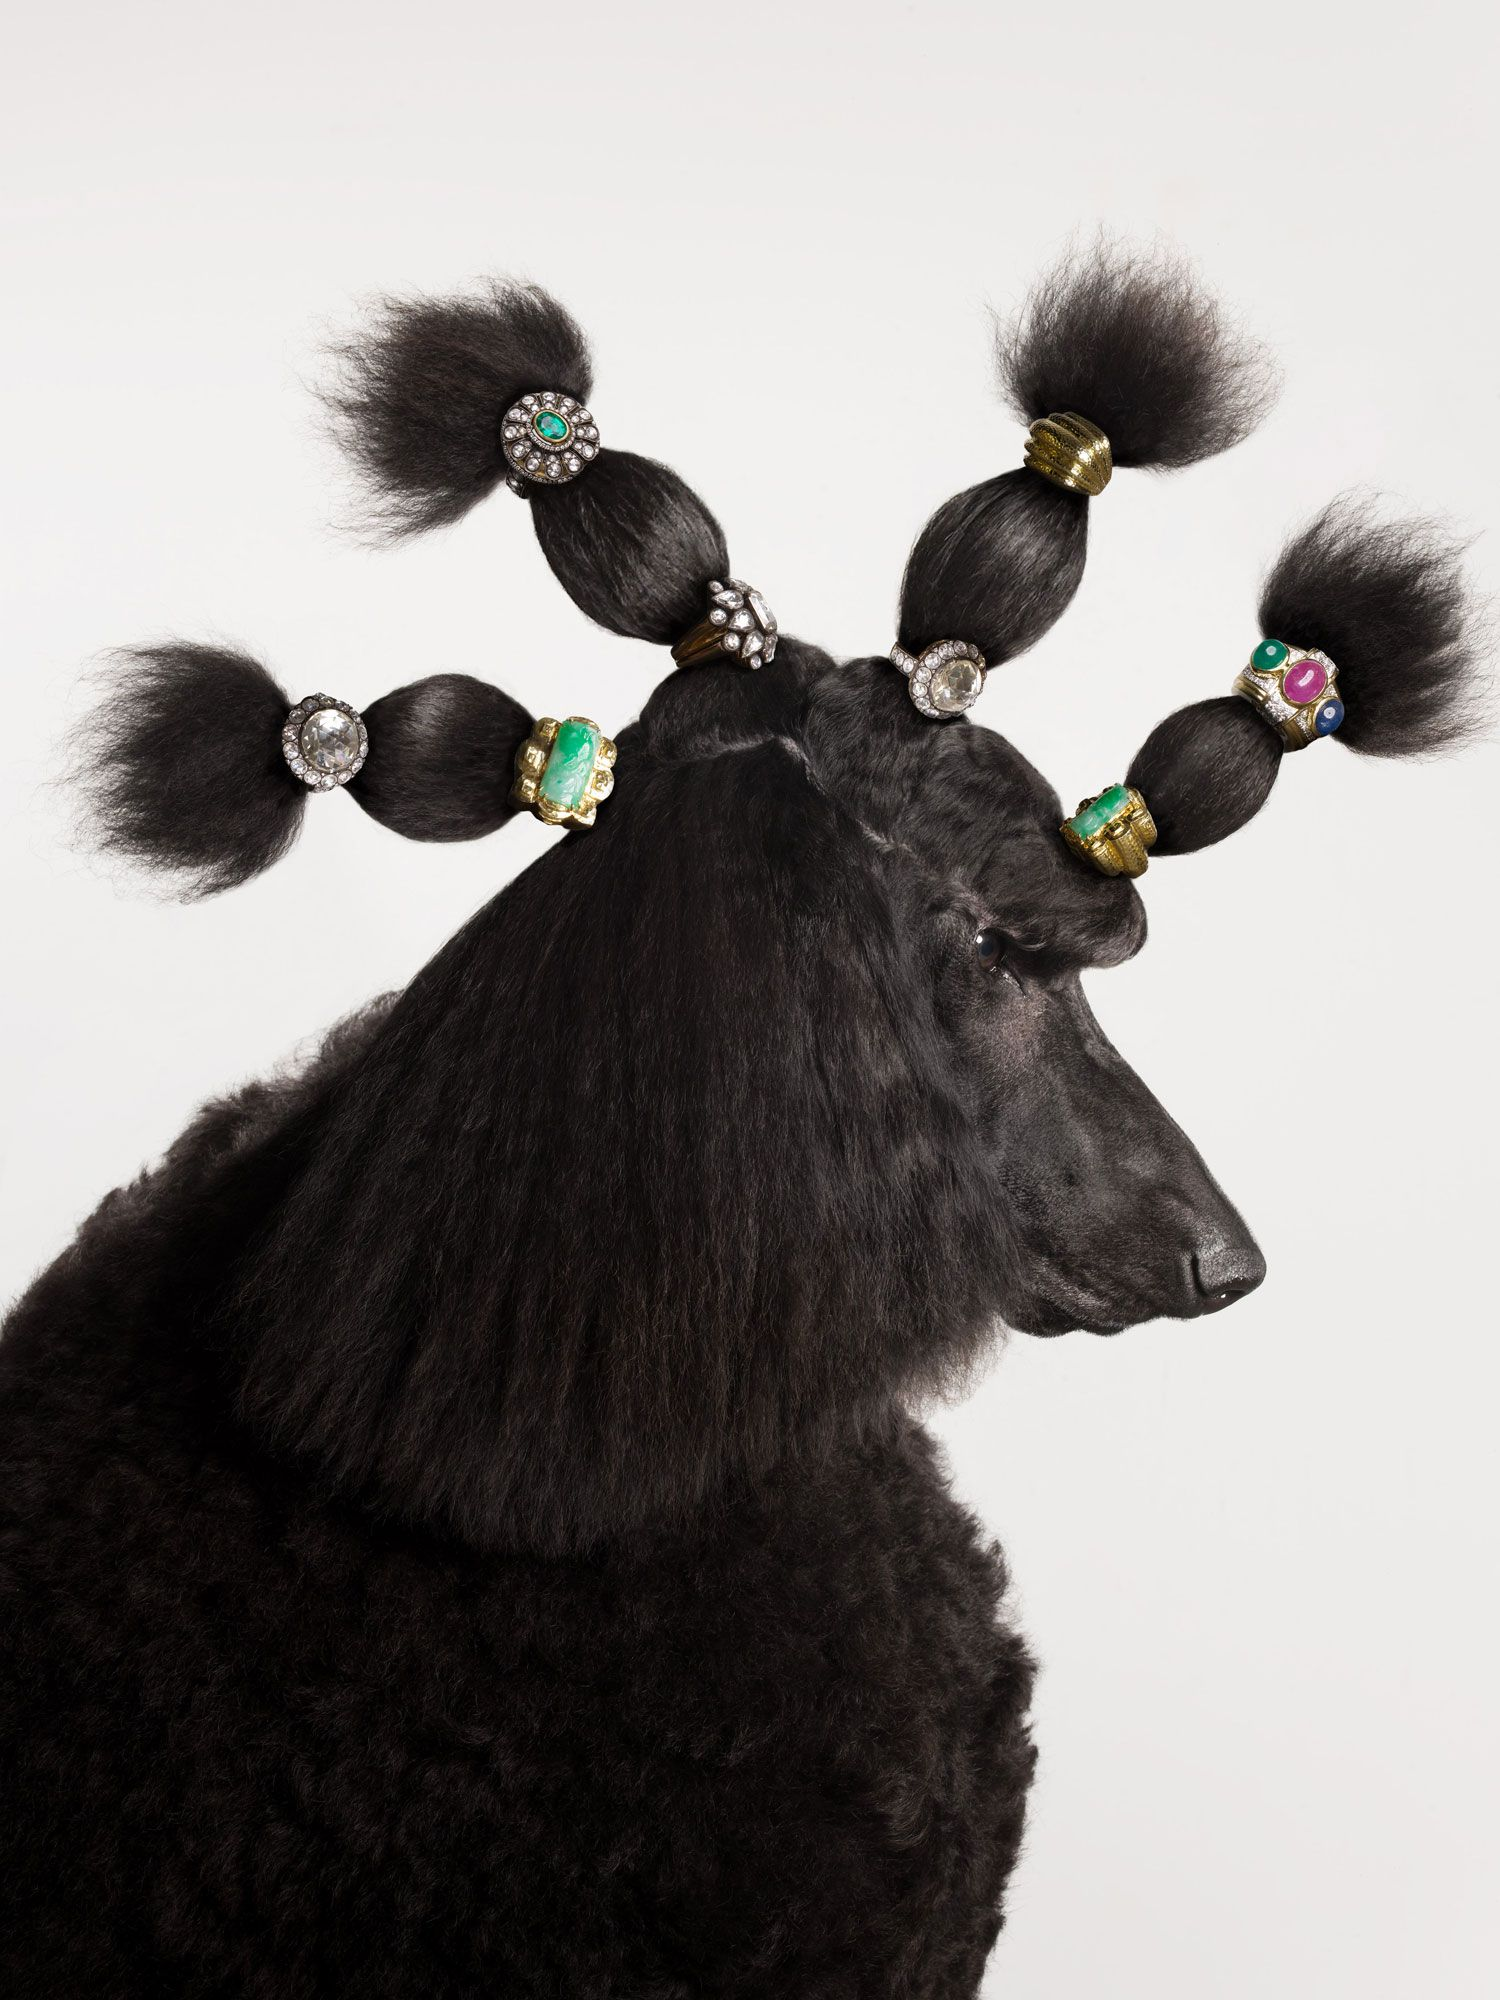 torkil gudnason animal jewelry poodle